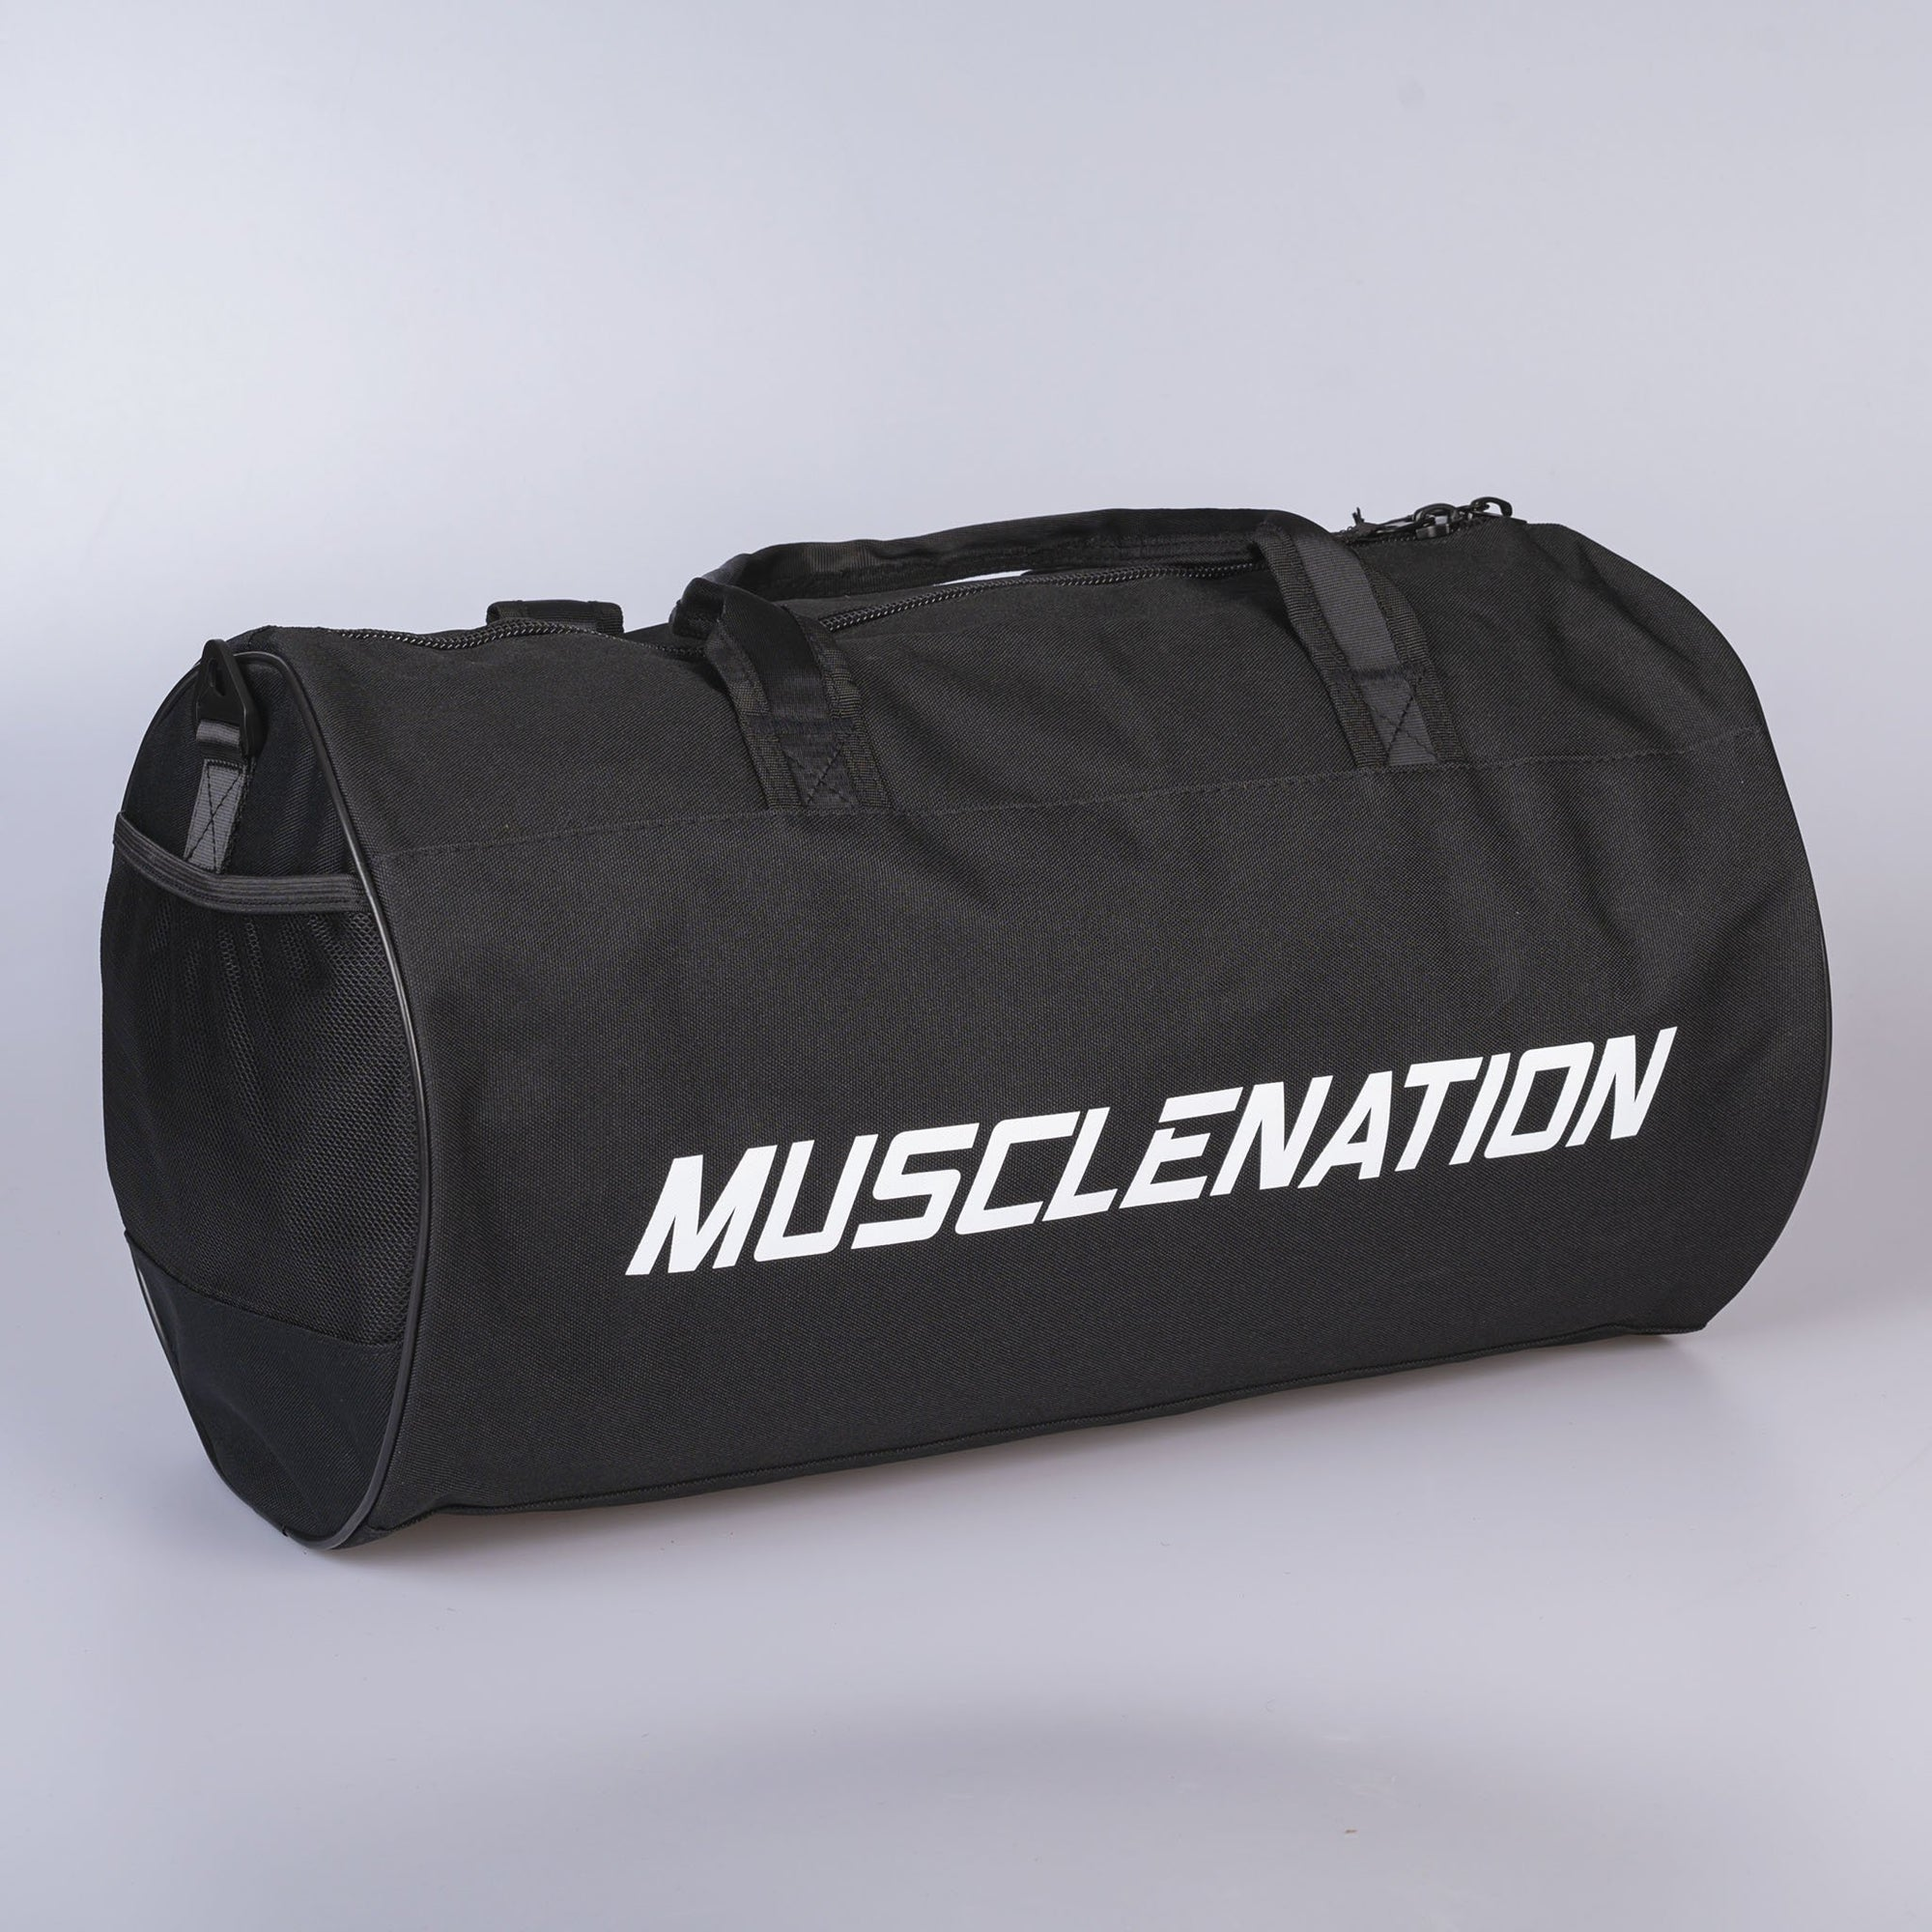 Muscle Nation Round Premium Gym Bag - Black